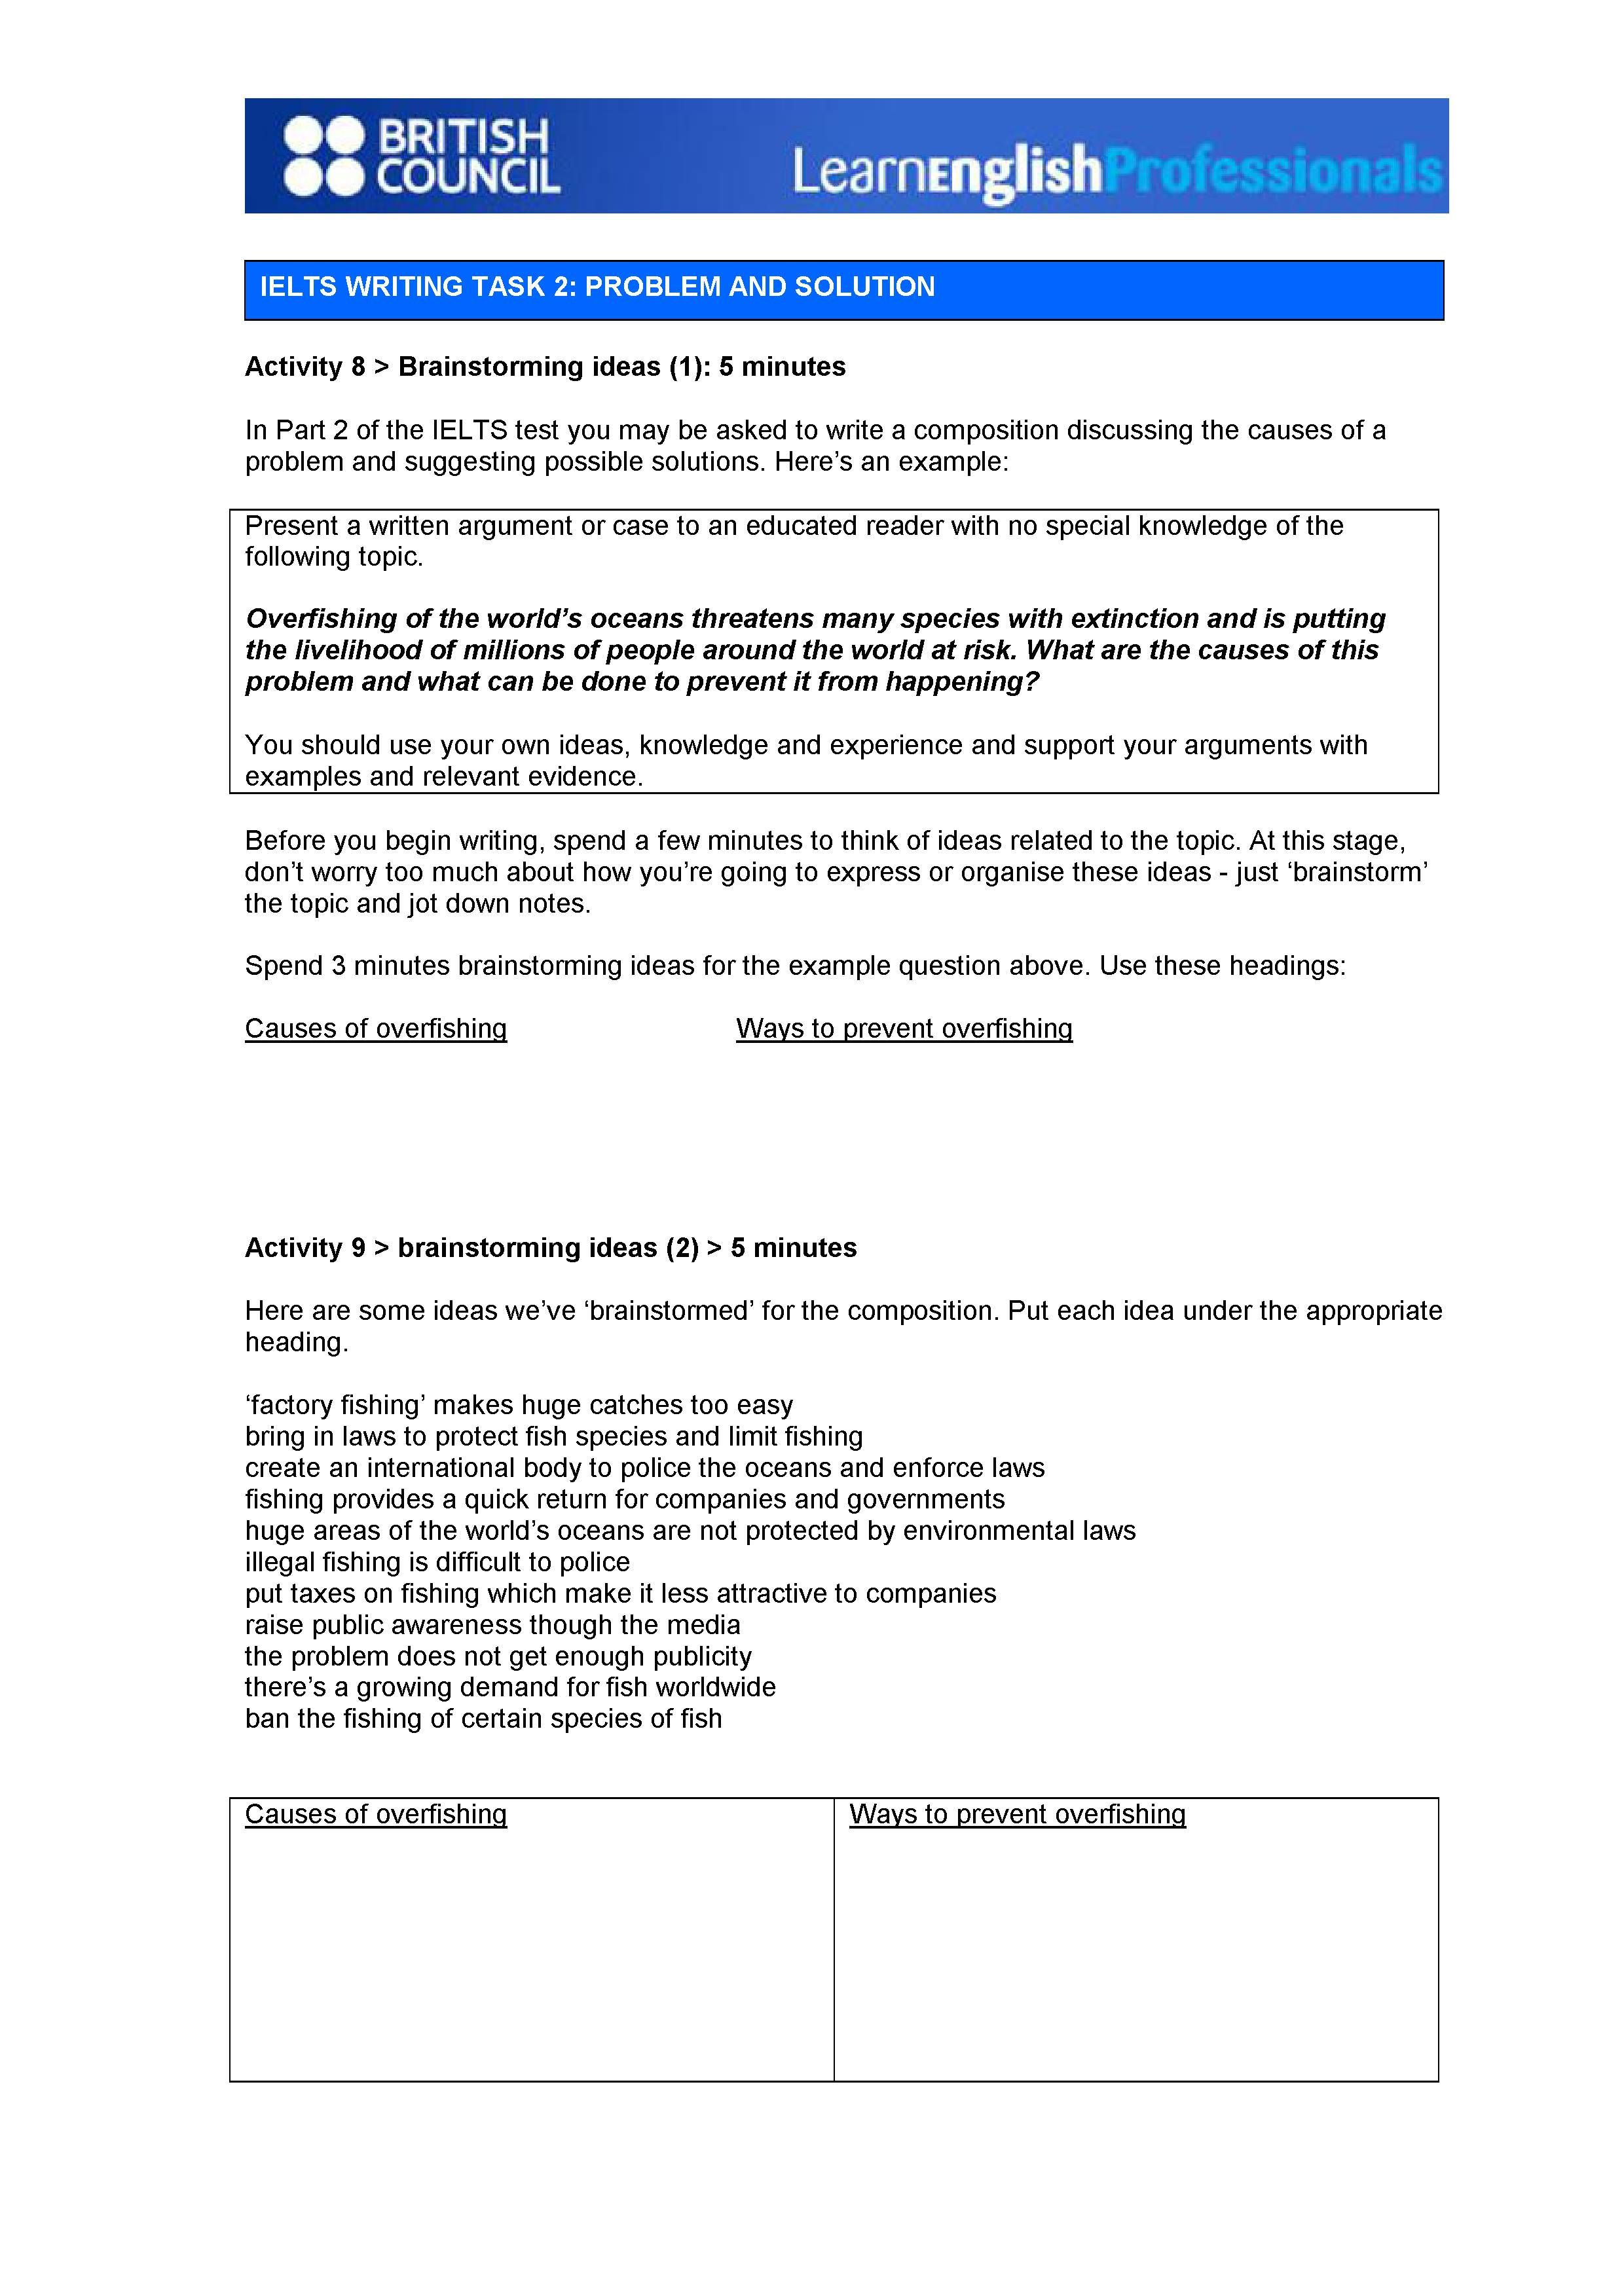 Ielts Writing Task 2 Problem And Solution Brainstorming